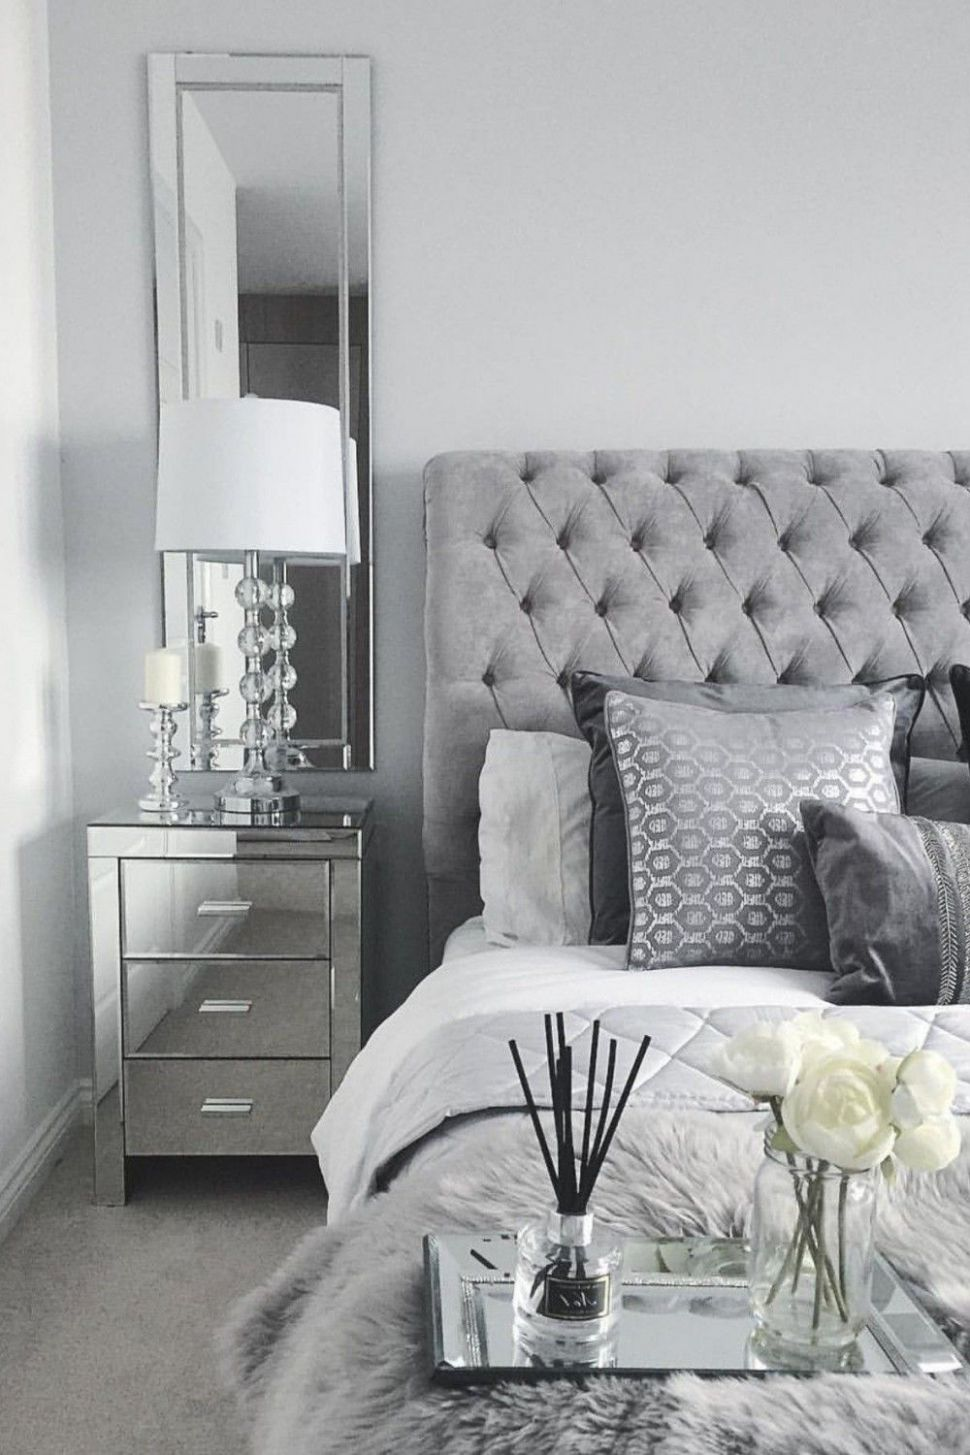 12 Best Of Grey and Silver Bedroom Ideas | Silver bedroom, White ...